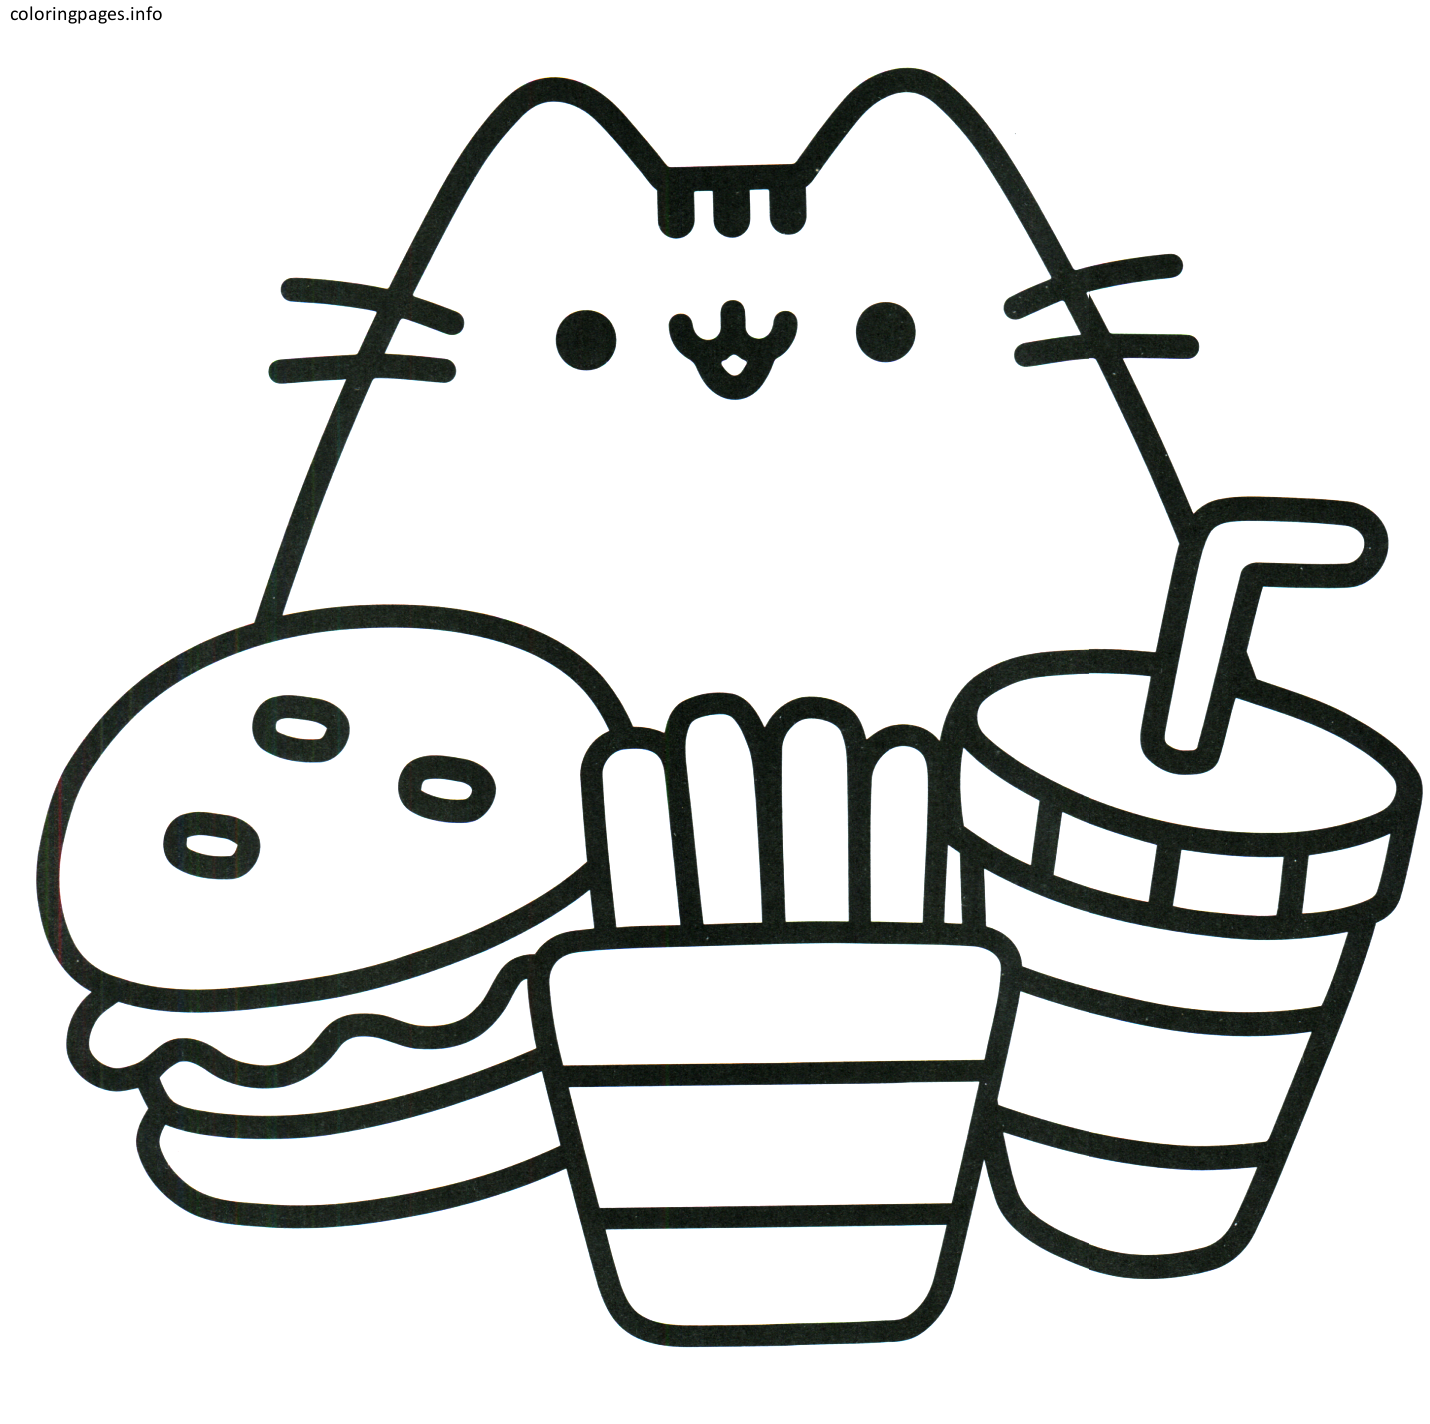 Kawaii Pusheen Cat Coloring Pages Coloring Pages Coloring Pages